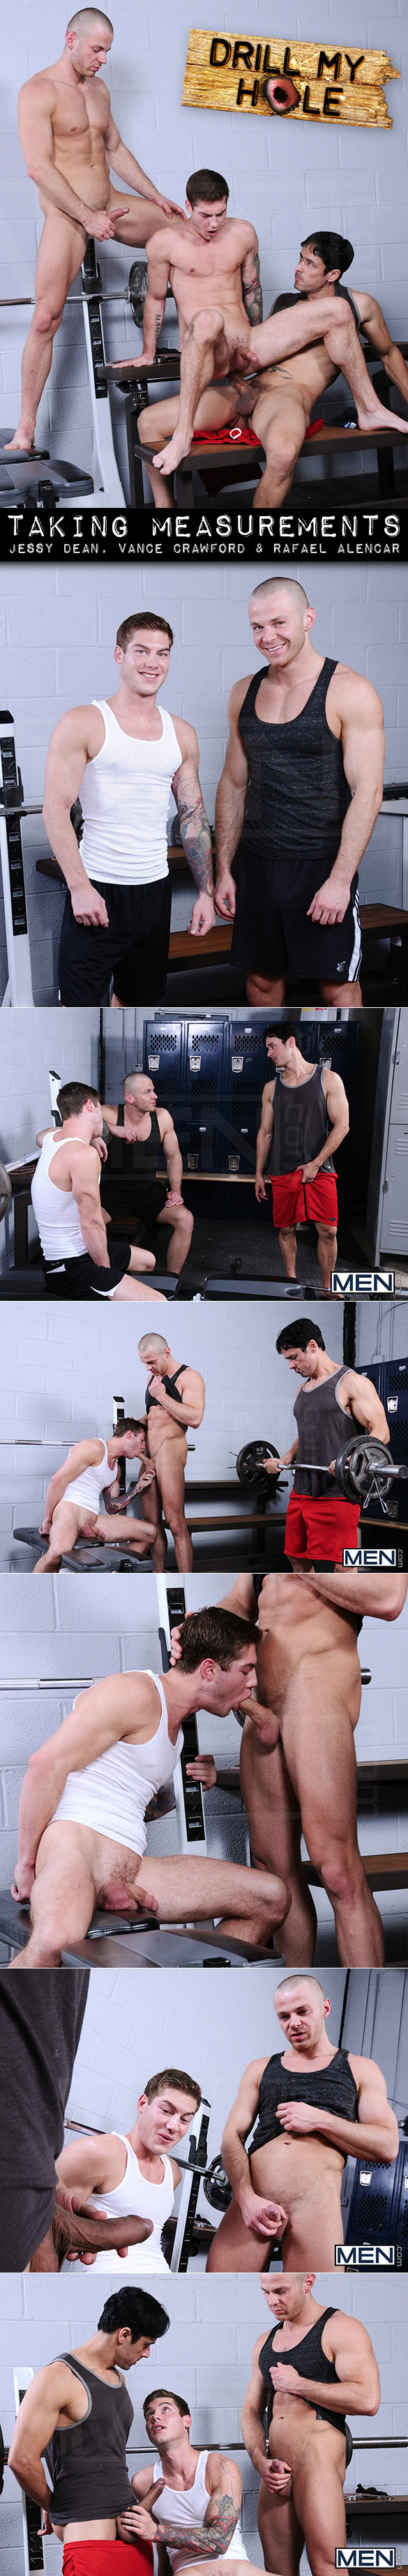 "Men.com: Rafael Alencar, Vance Crawford and Jessy Dean in ""Taking Measurements"""